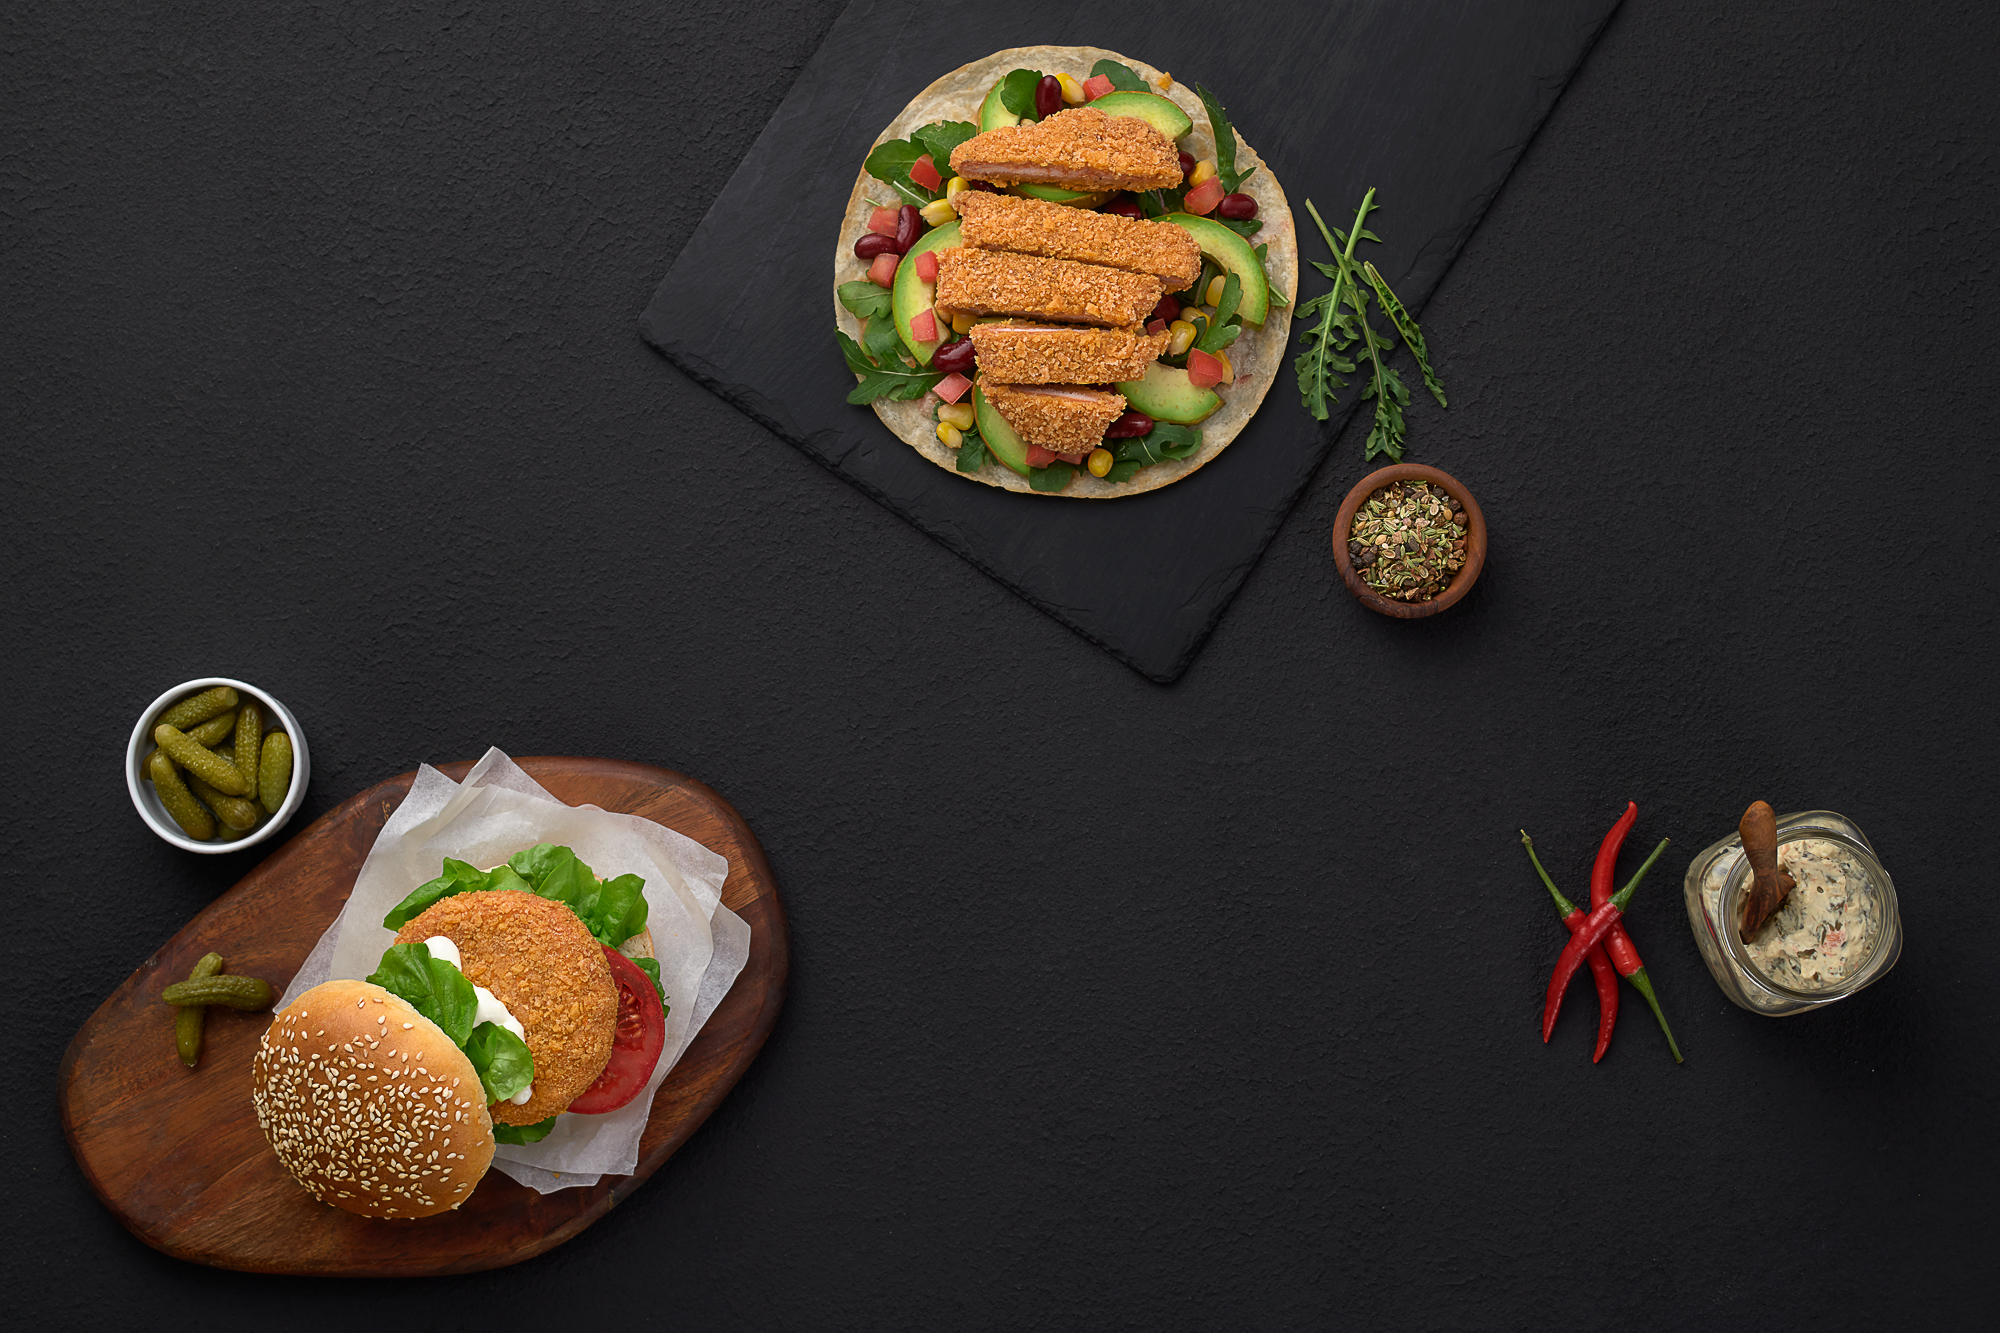 Chicken, Avocado, Red Beans, tomatoes، Rocca, chicken Burger, ban and pickles